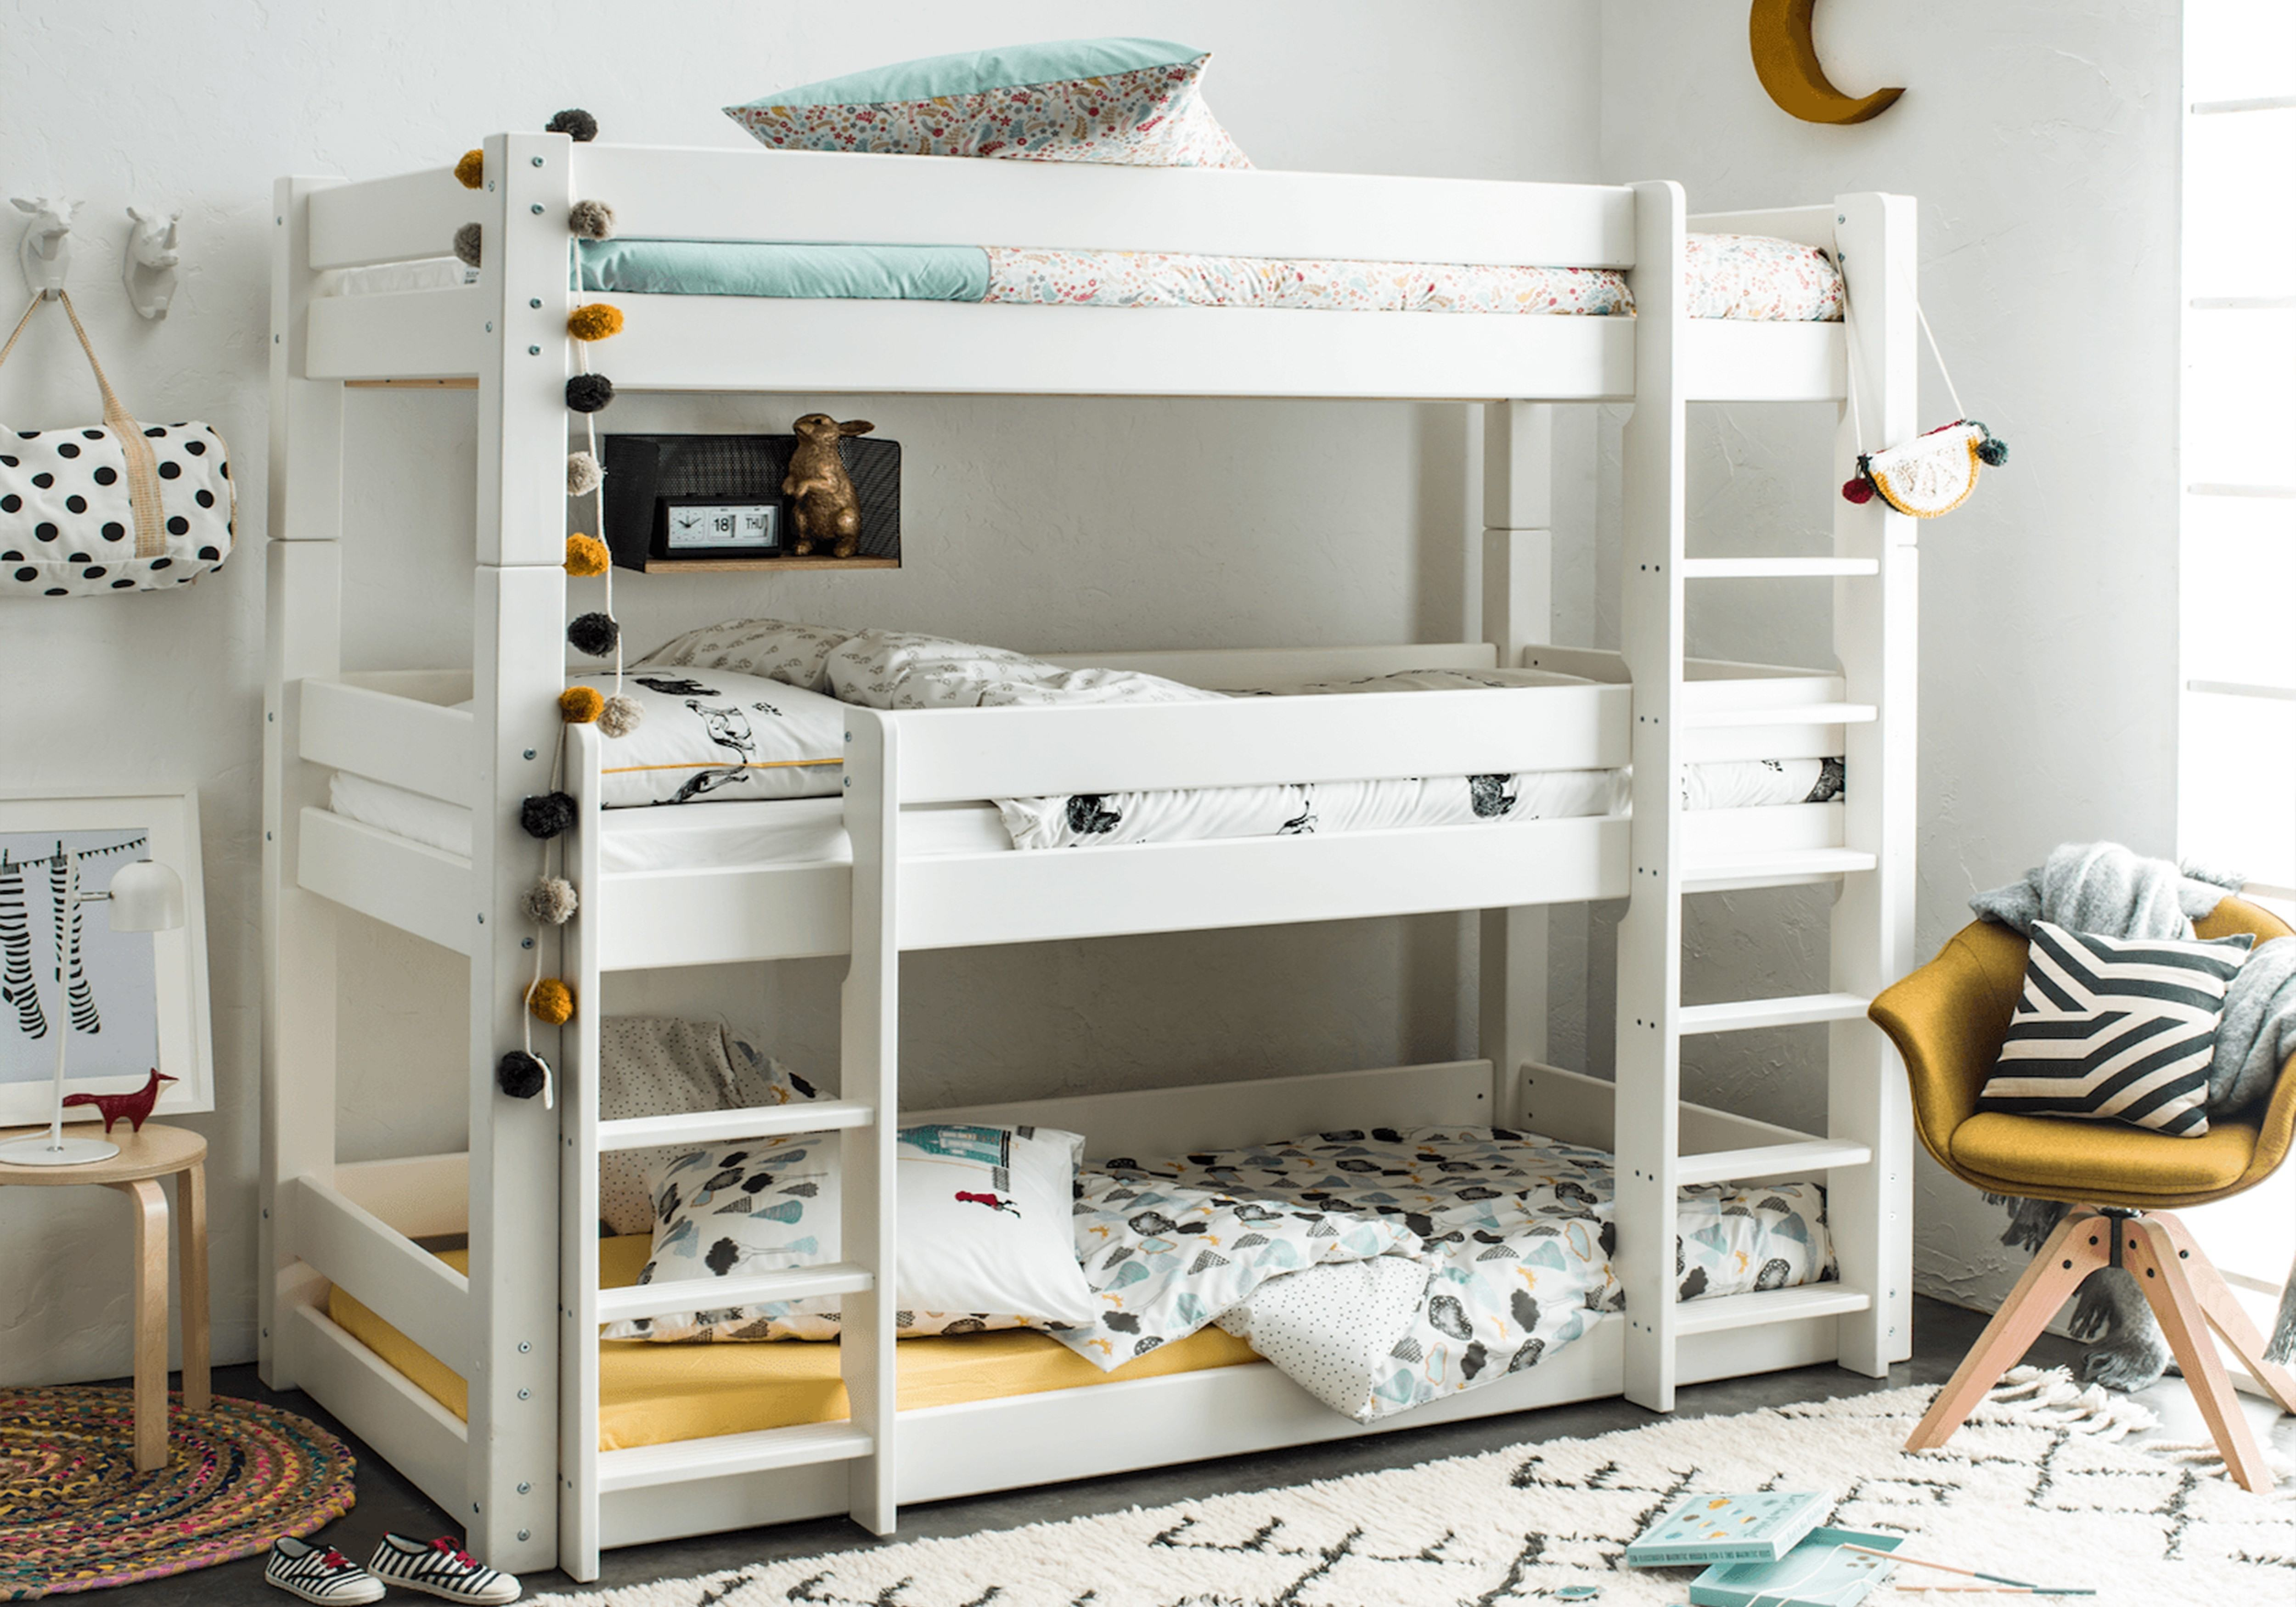 Stompa Classic Bunk Bed Scandinavia Triple Bunk Bed Rainbow Wood